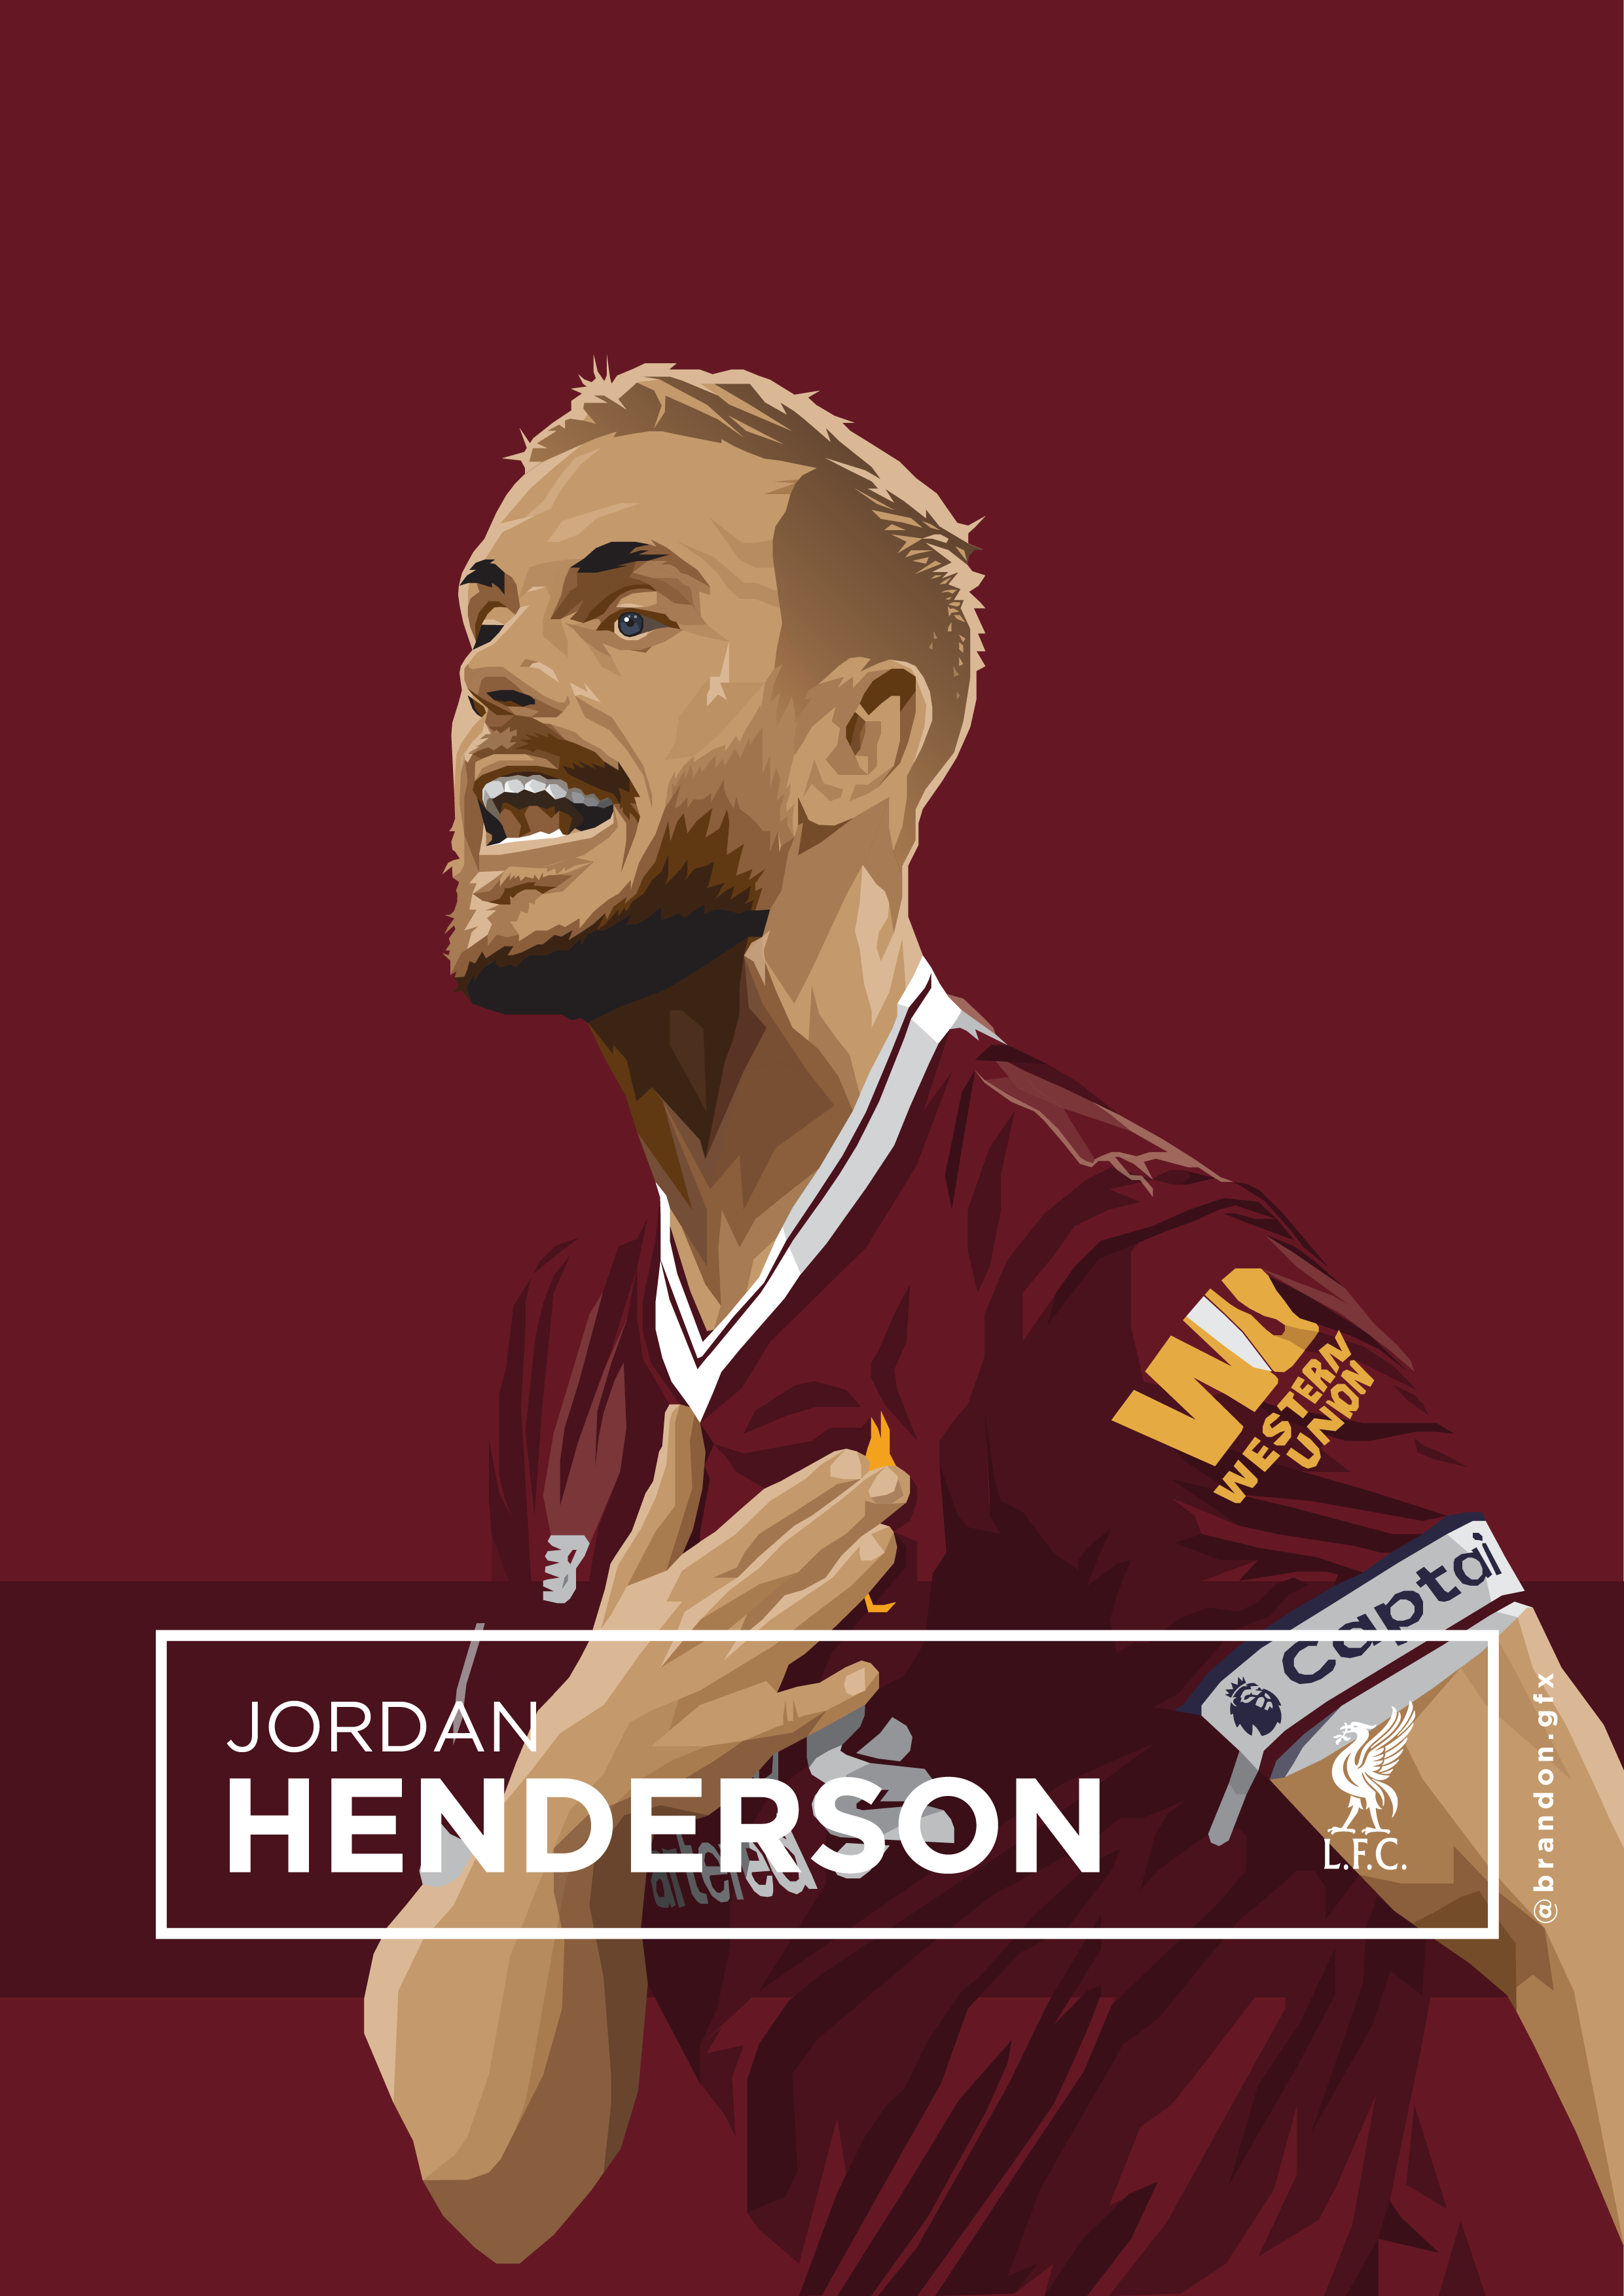 henderson-01.png